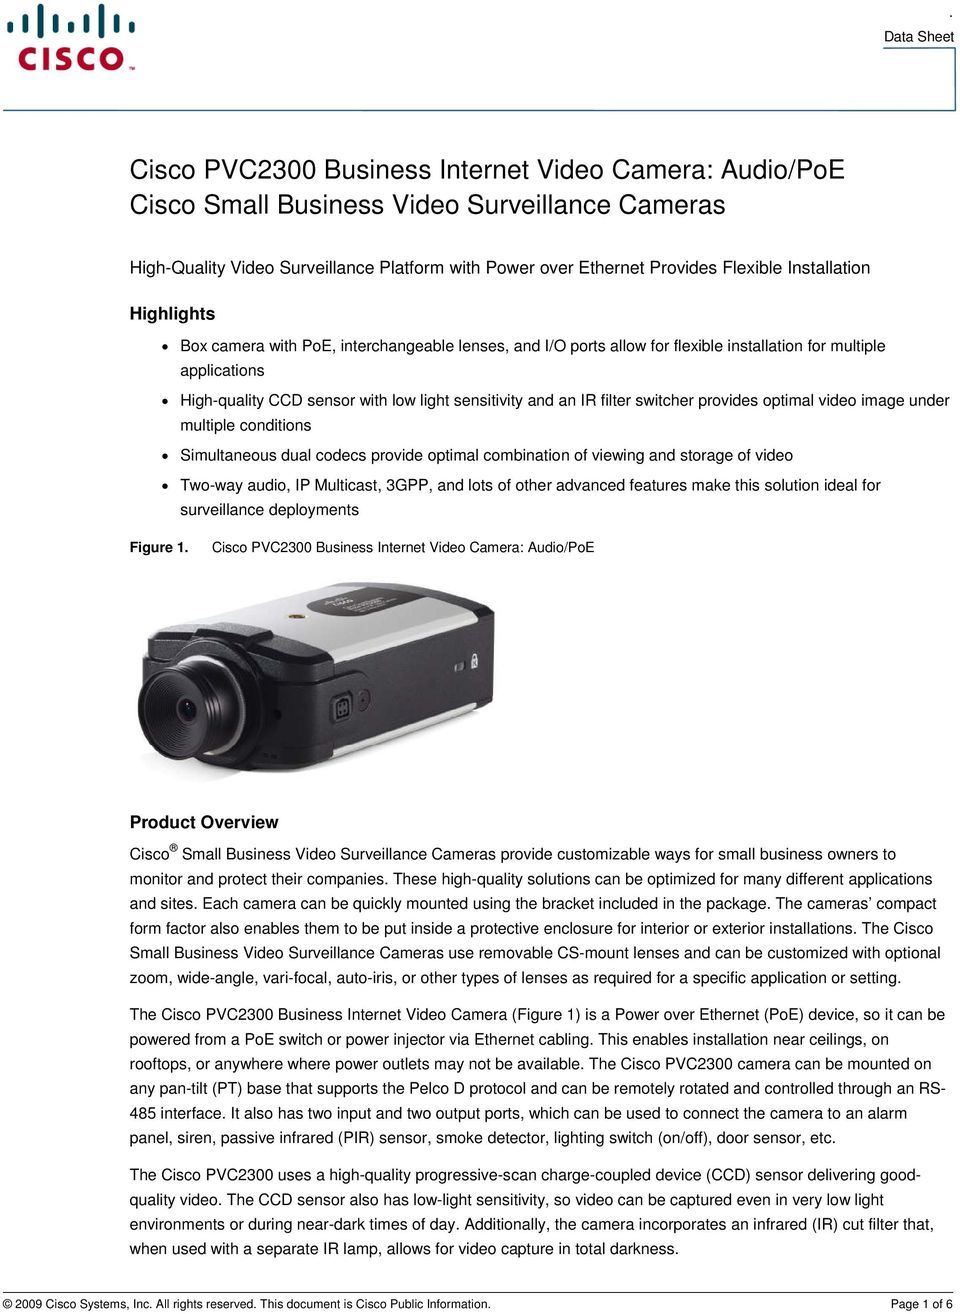 sensitivity and an IR filter switcher provides optimal video image under multiple conditions Simultaneous dual codecs provide optimal combination of viewing and storage of video Two-way audio, IP